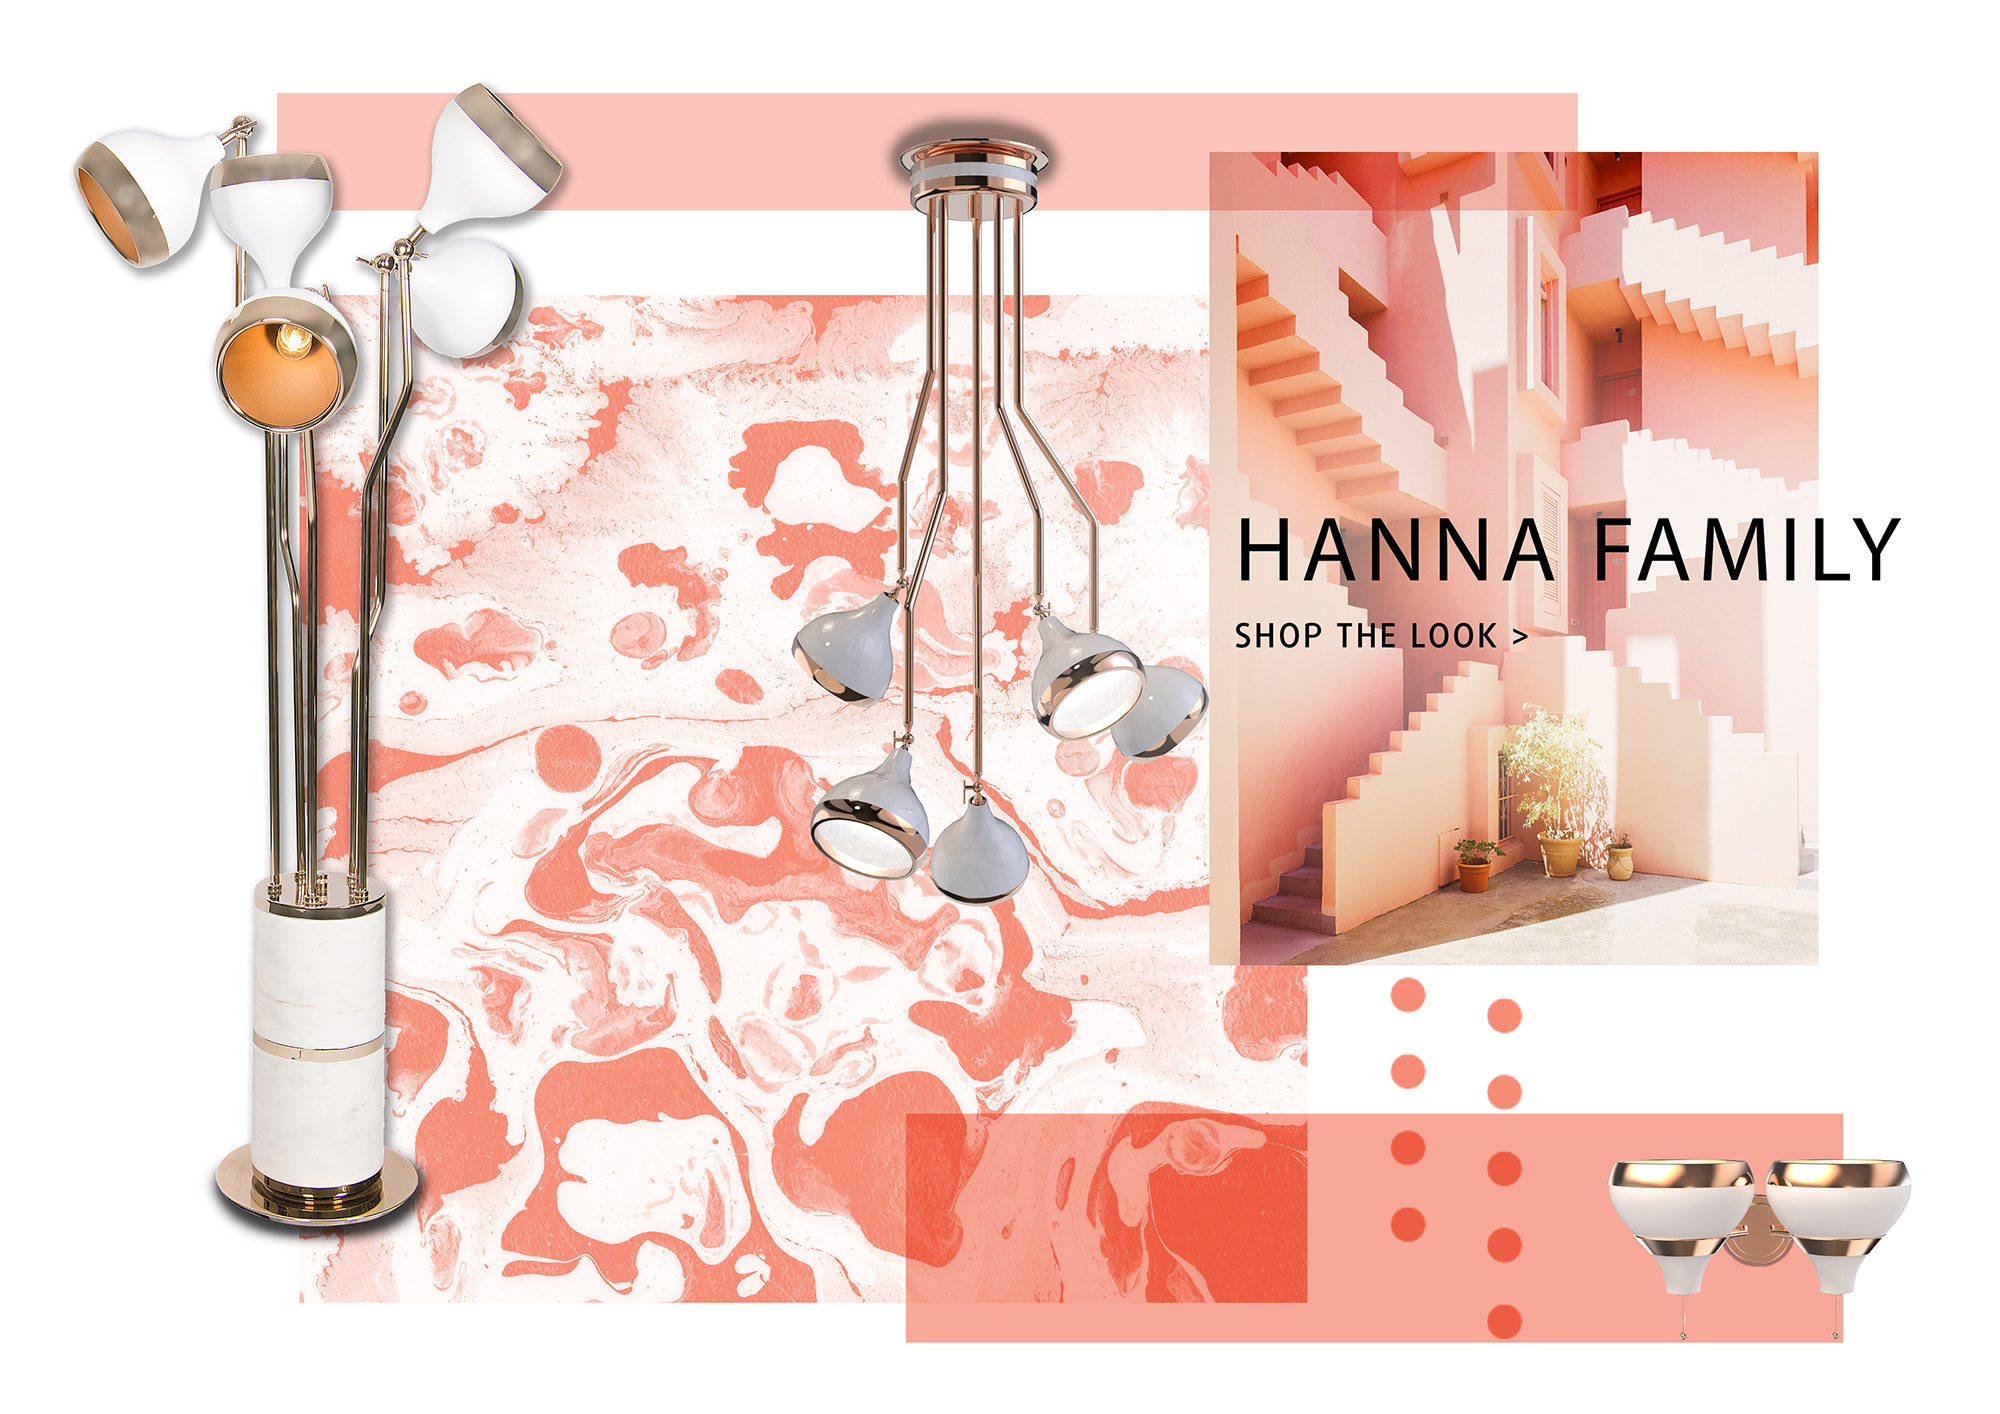 Hanna Family: Let This Family Brighten up your brand new soft décor!